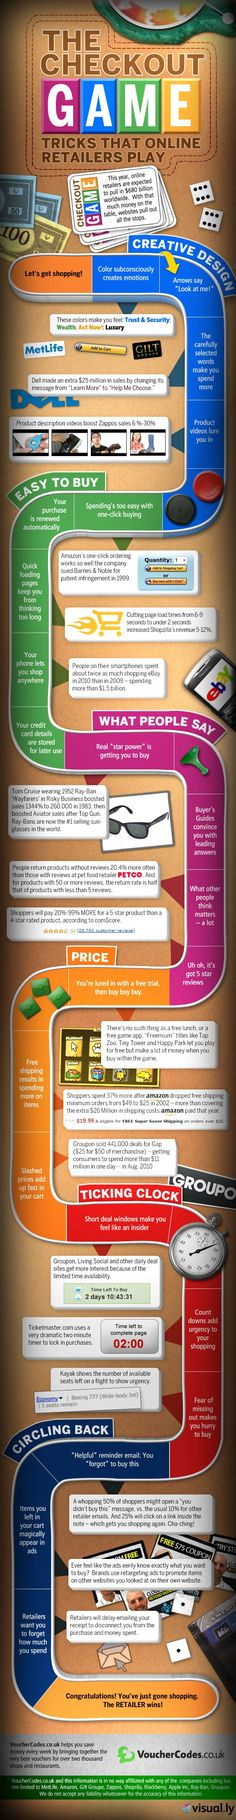 How Do Online Retailers Get You To Spend More? #retail #ecommerce #infographic